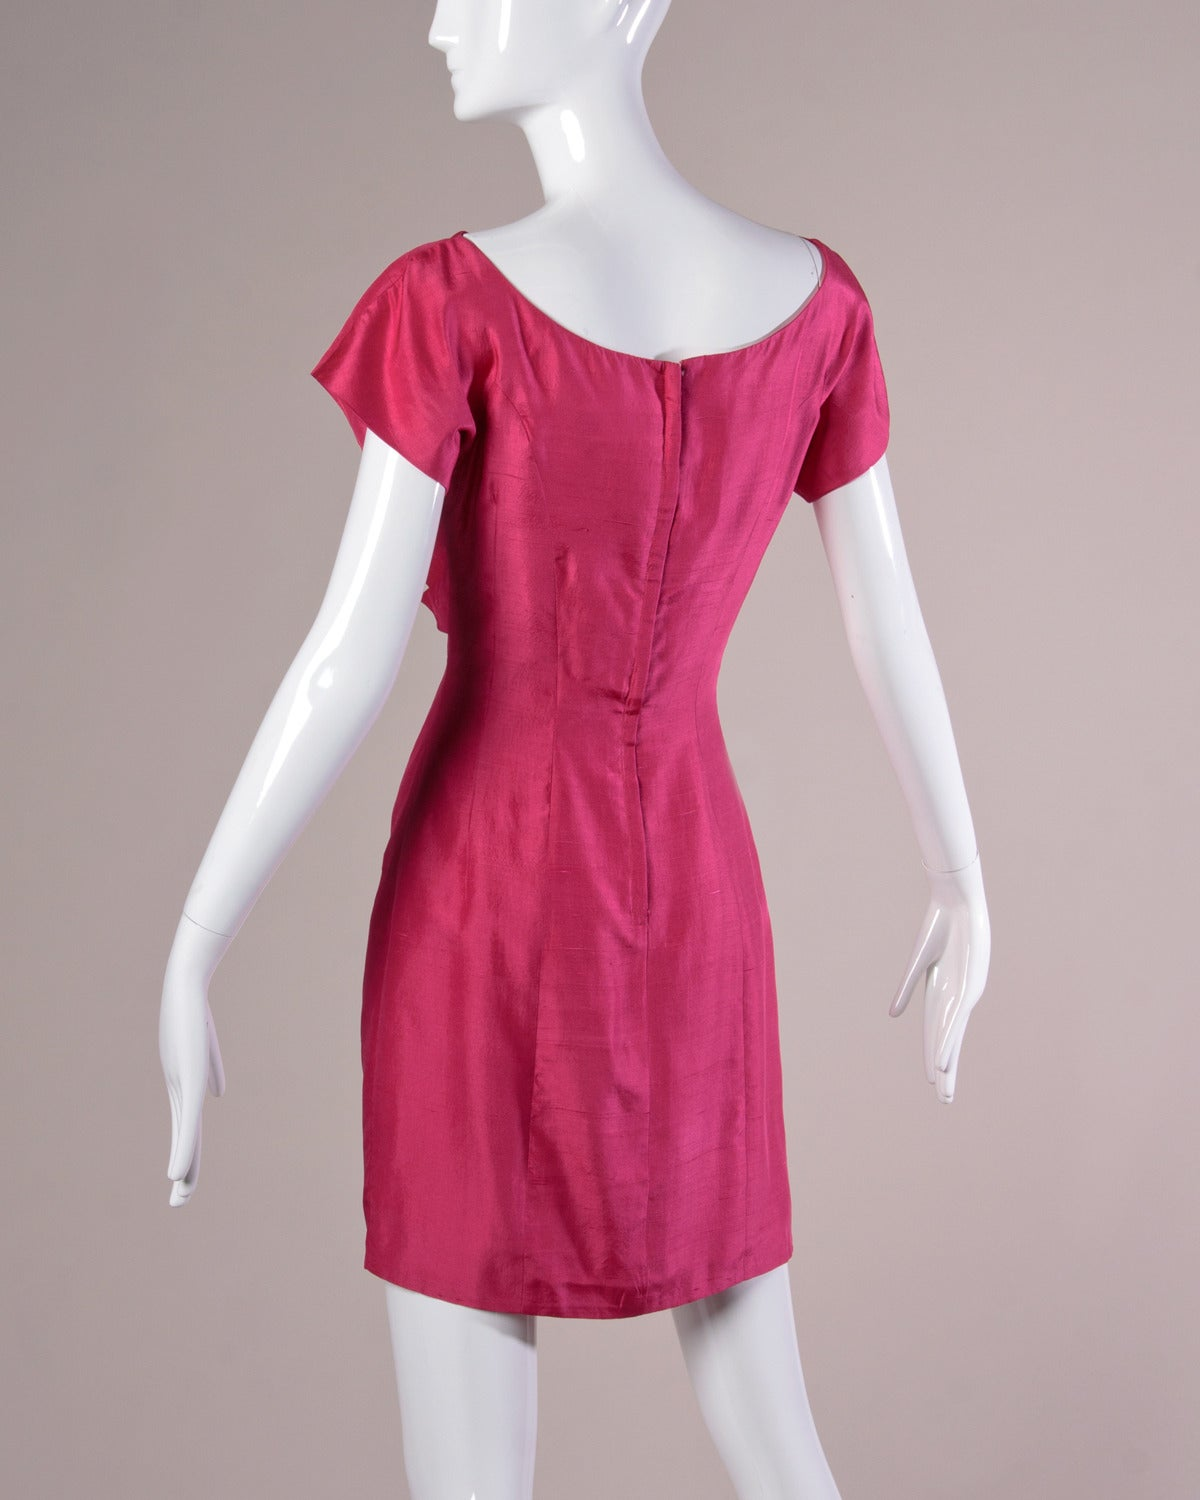 Sydney North Vintage 1960s Fuchsia Silk Cocktail Dress In Excellent Condition For Sale In Sparks, NV